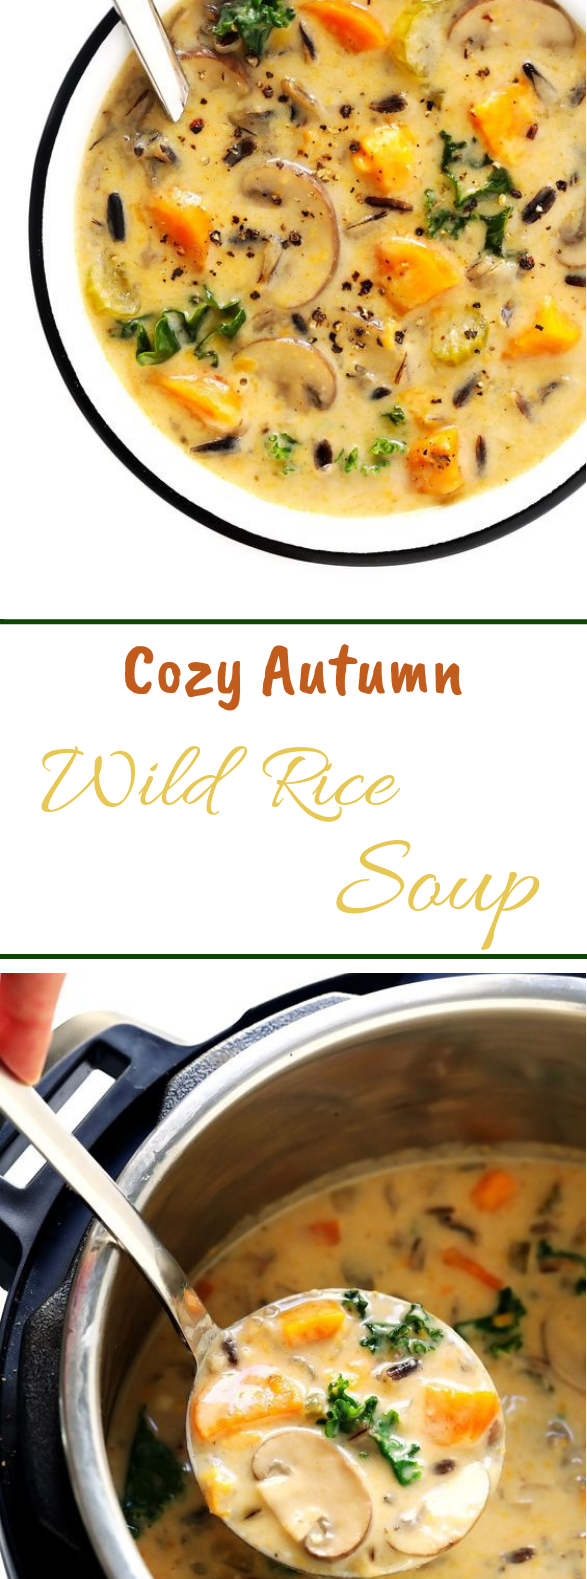 Cozy Autumn Wild Rice Soup #dinner #soup